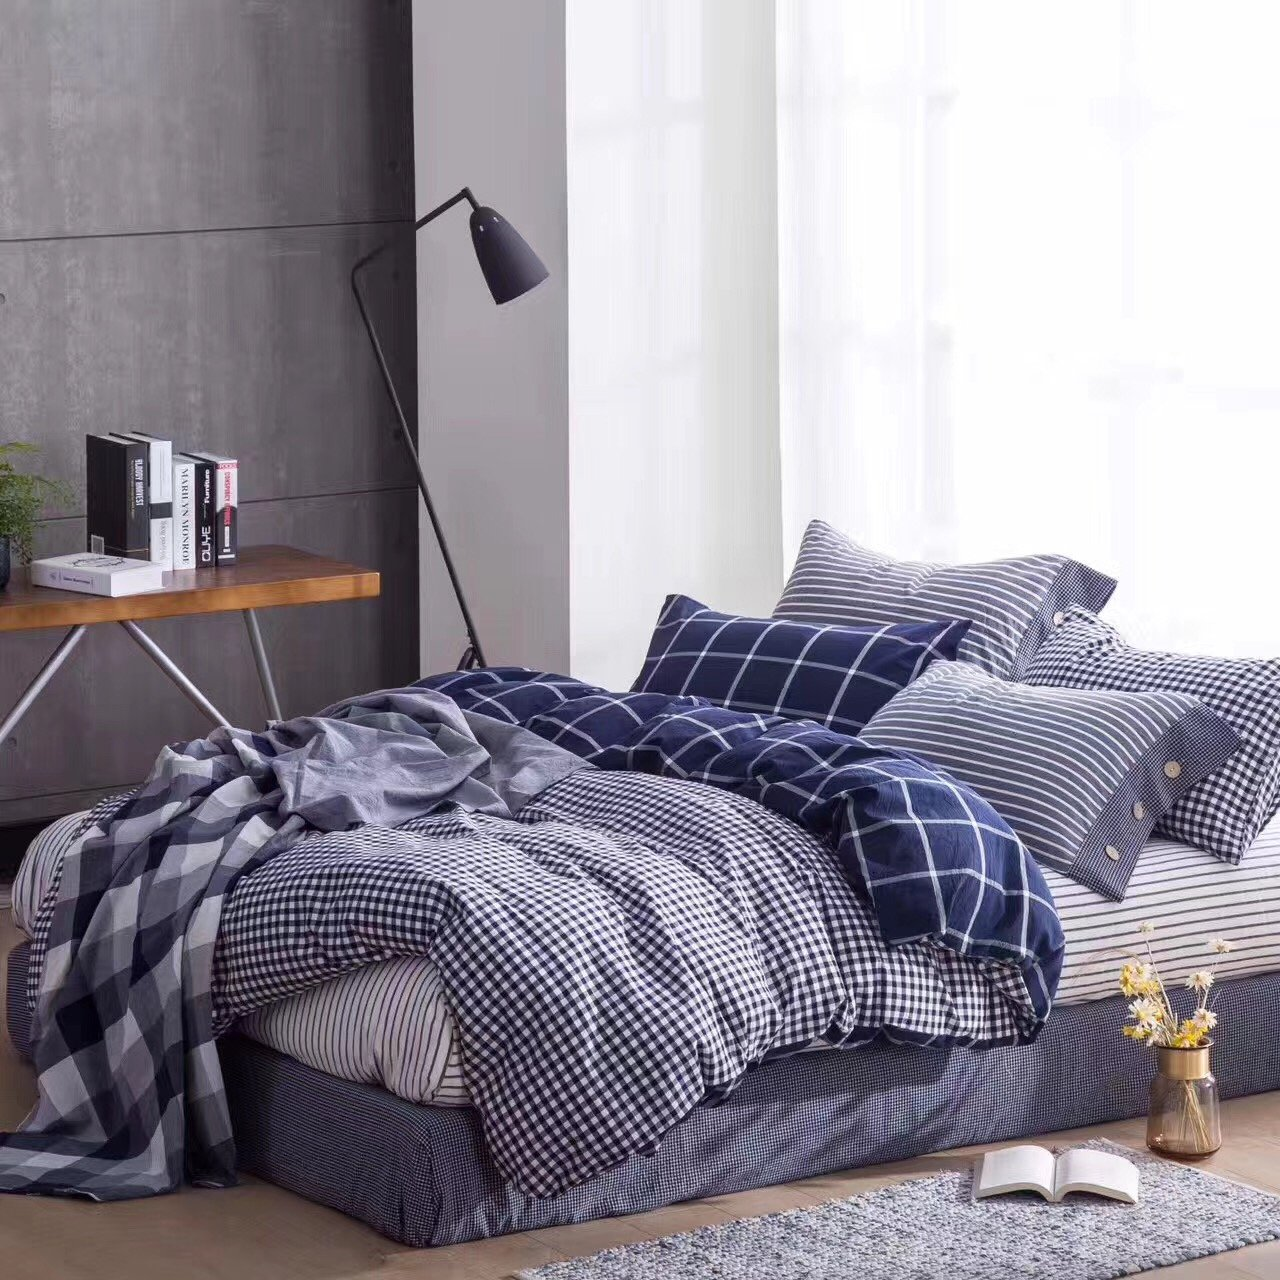 Eikei Washed Cotton Chambray Duvet Quilt Cover Stripe to Solid Reversible Casual Modern Style Pinstripe Bedding Set Relaxed Soft Feel Natural Wrinkled Look (King, Navy Plaid)